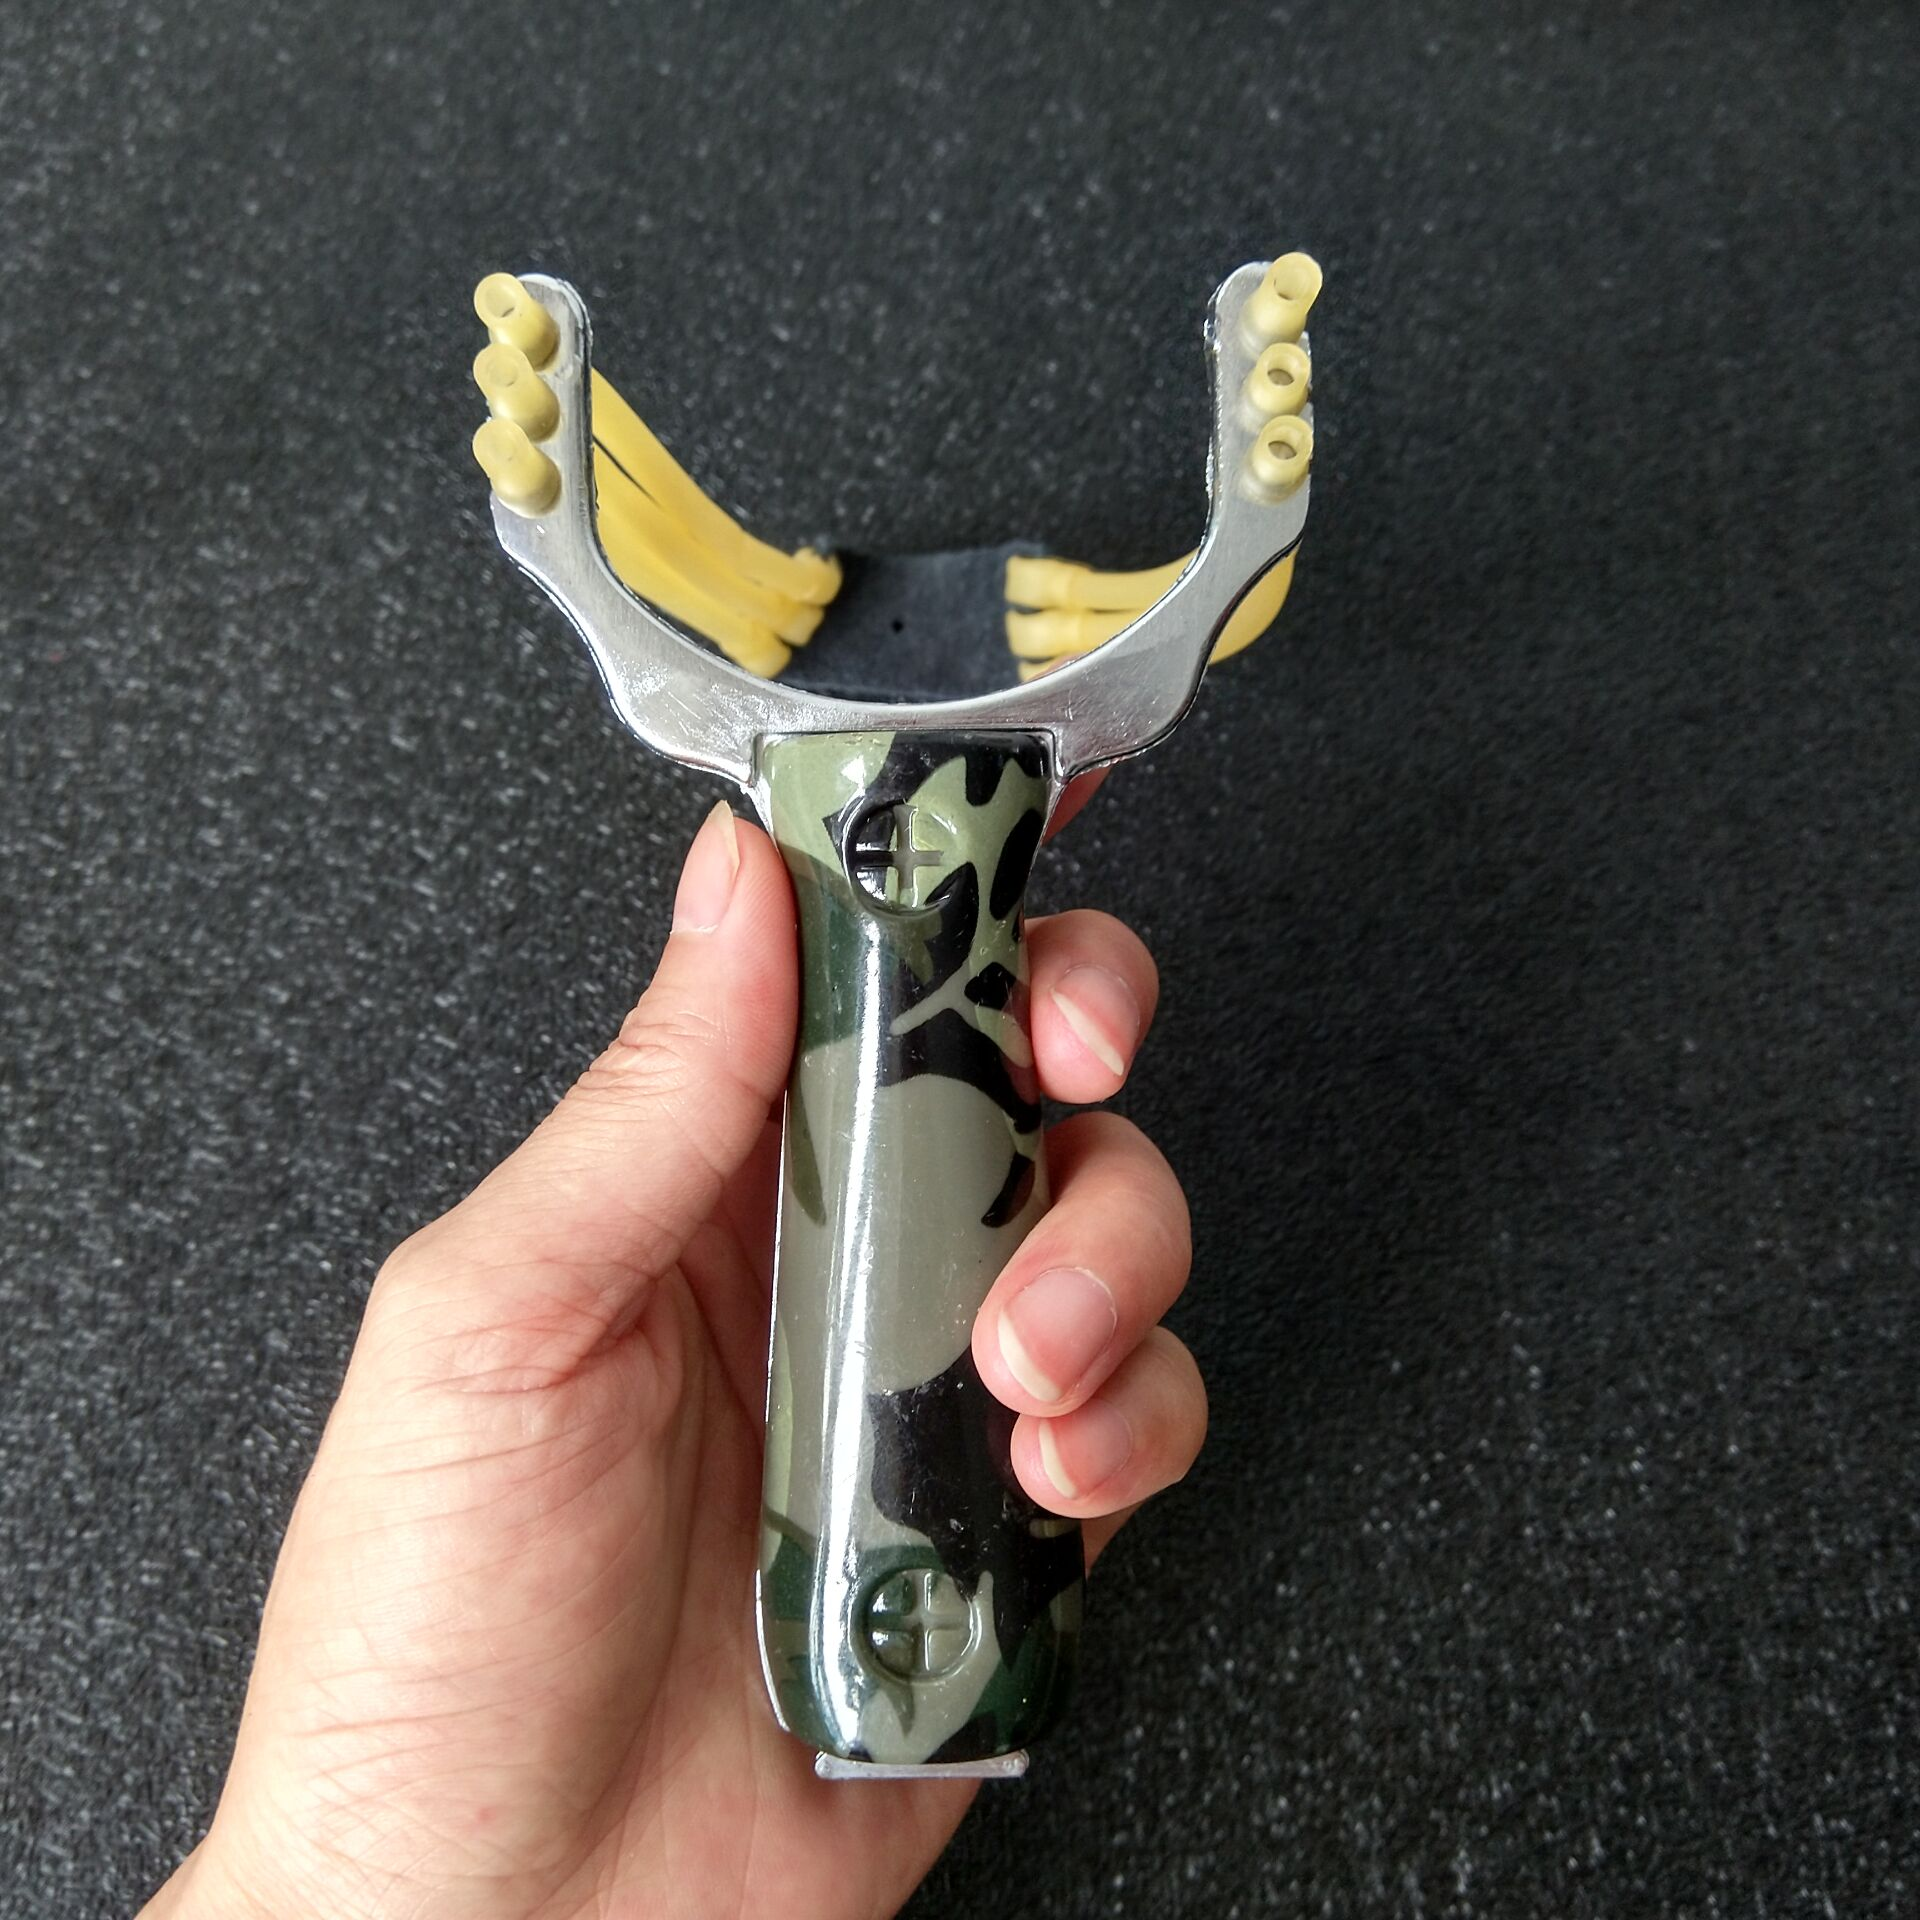 Professional Slingshot Sling shot Aluminium Alloy Slingshot Catapult Camouflage Bow Un-hurtable Outdoor Game Playing Tools(China)